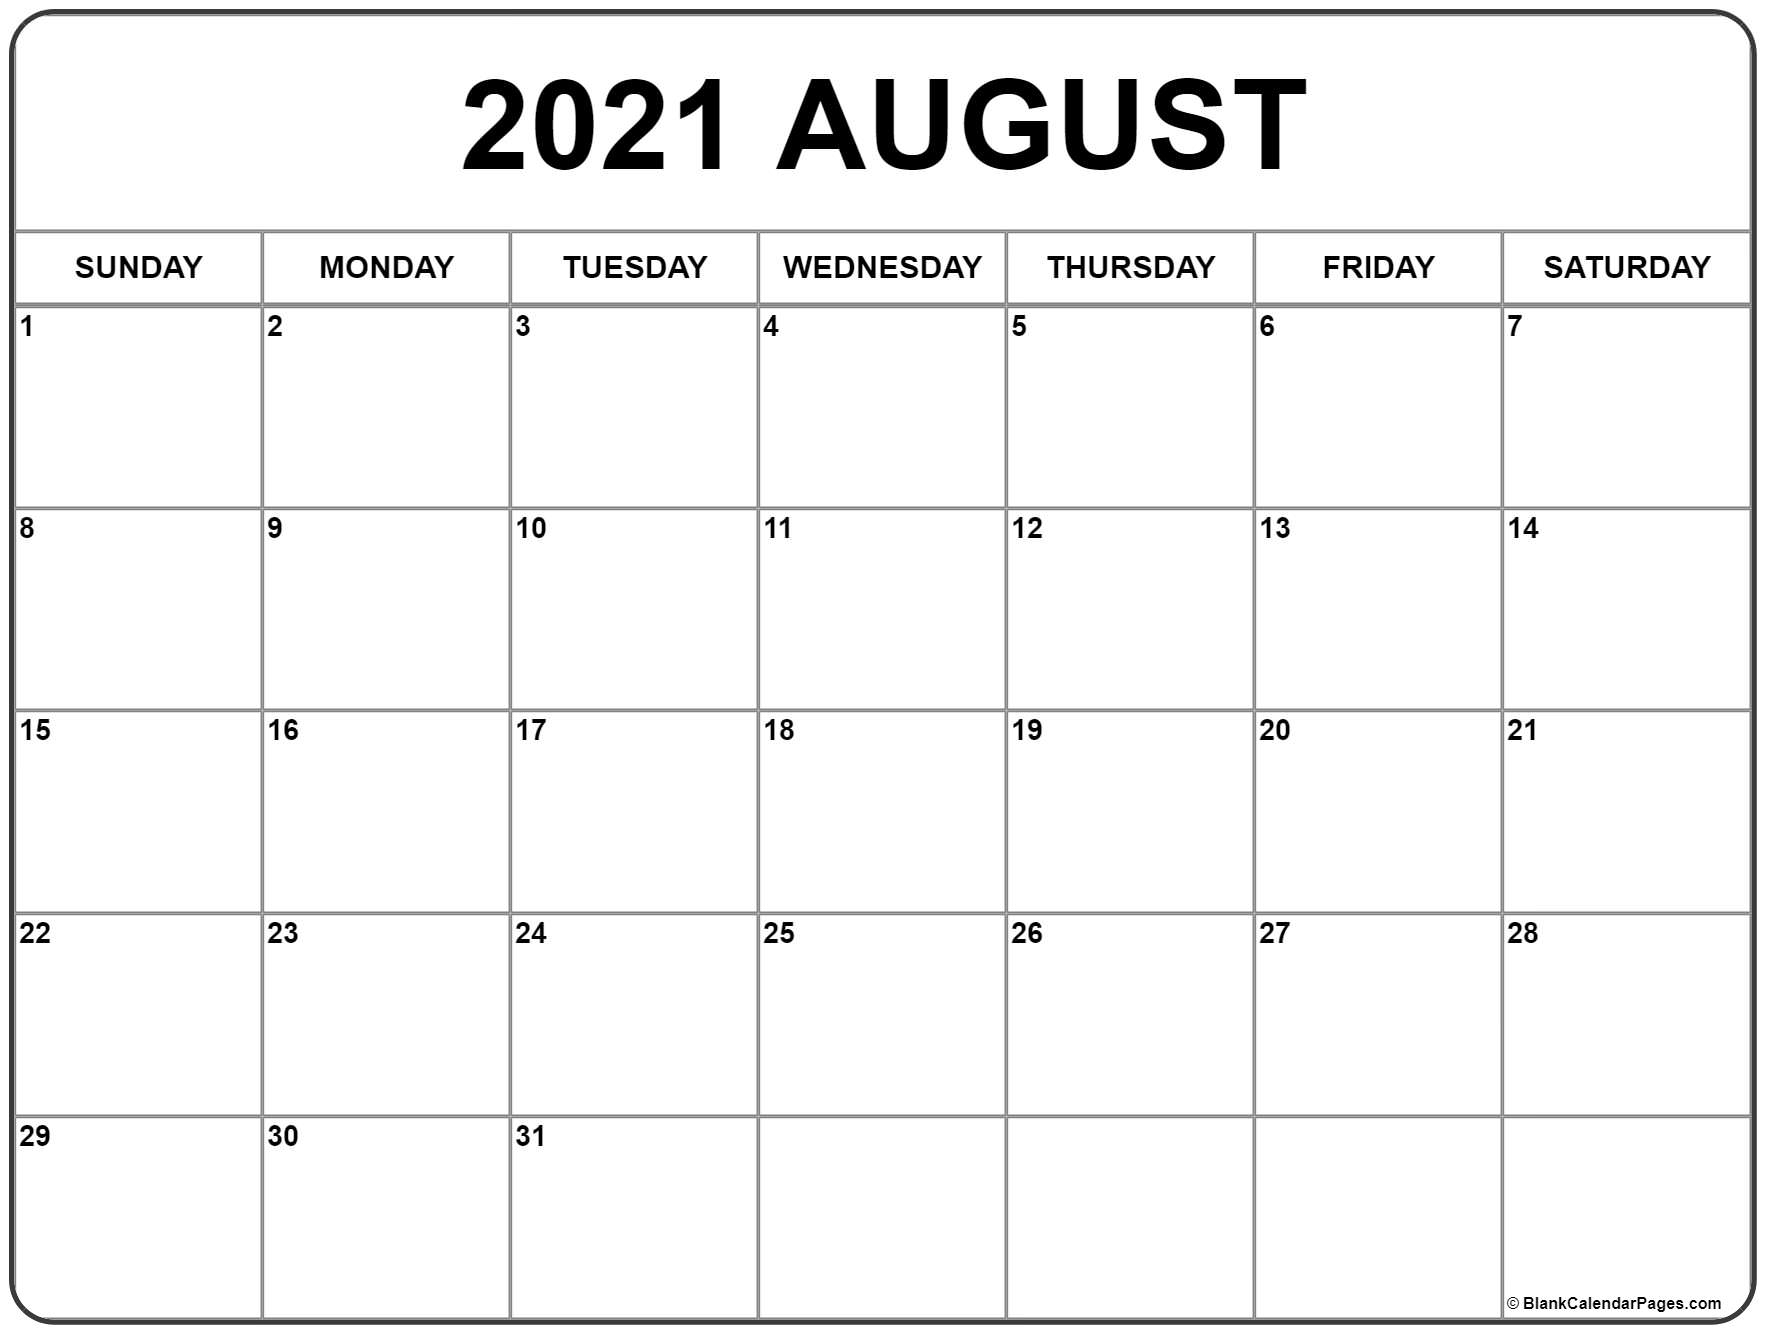 Collect Free Printable Calanders For August 2021 Through December 2021